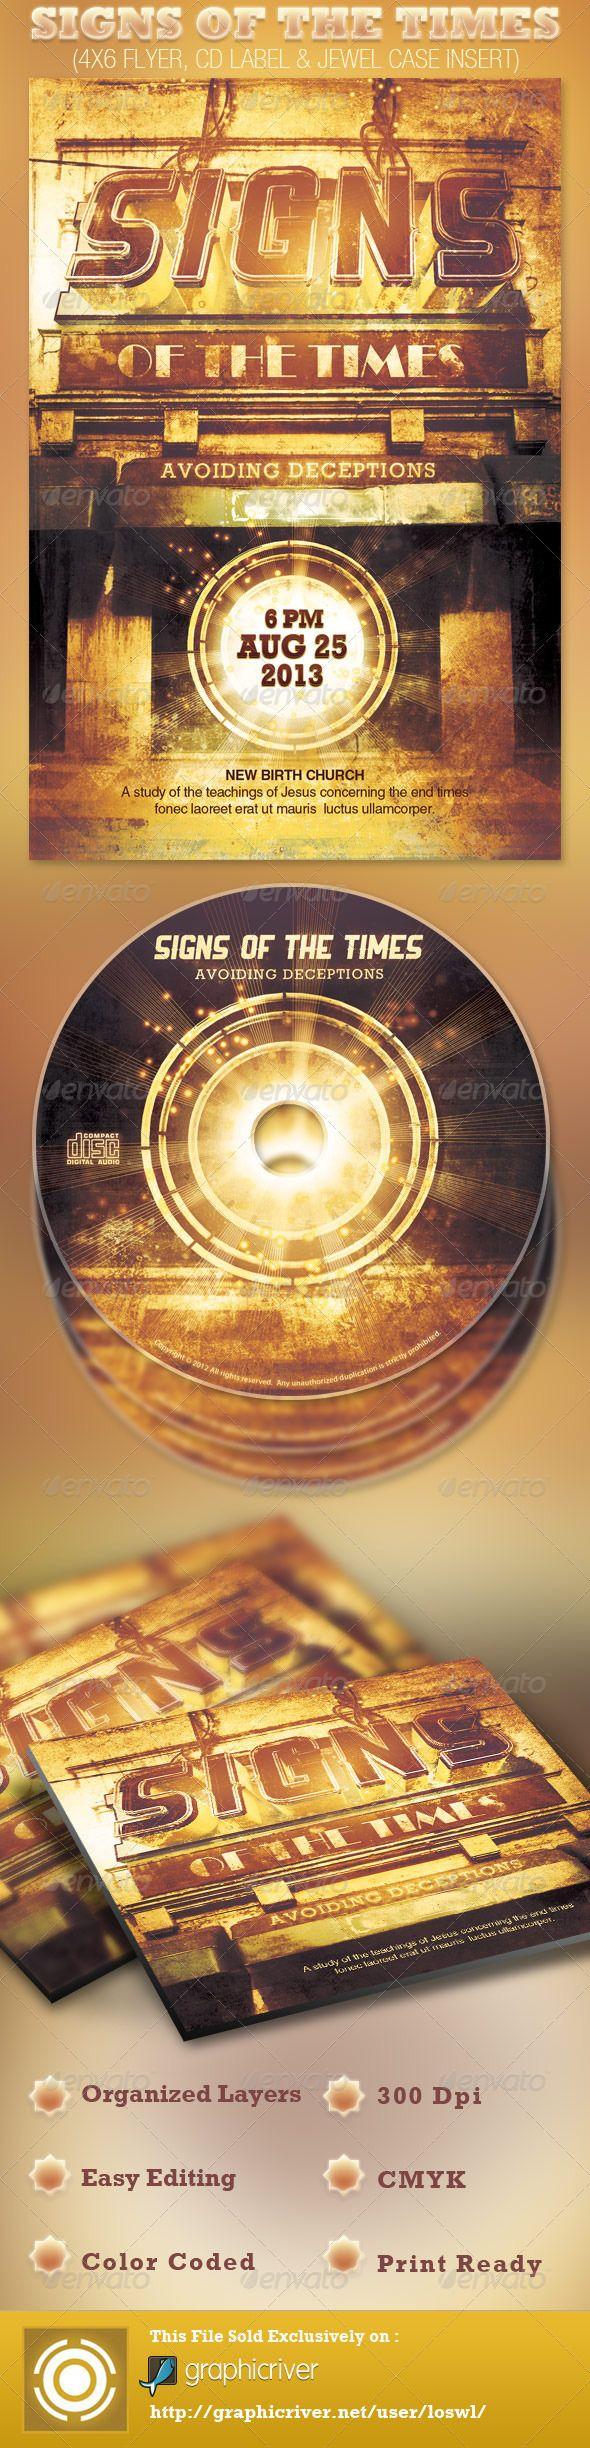 This Signs of the Times Church Flyer and CD Template is sold exclusively on graphicriver, it can be used for your Sermons, Bible Studies, Youth Programs, Bulletins, Campus Ministries etc. In this package you'll find 3 Photoshop files. All text and graphics in the files are editable (Except for the 3D Headline), color coded and simple to edit. The file also has 5 one-click color options. - $7.00